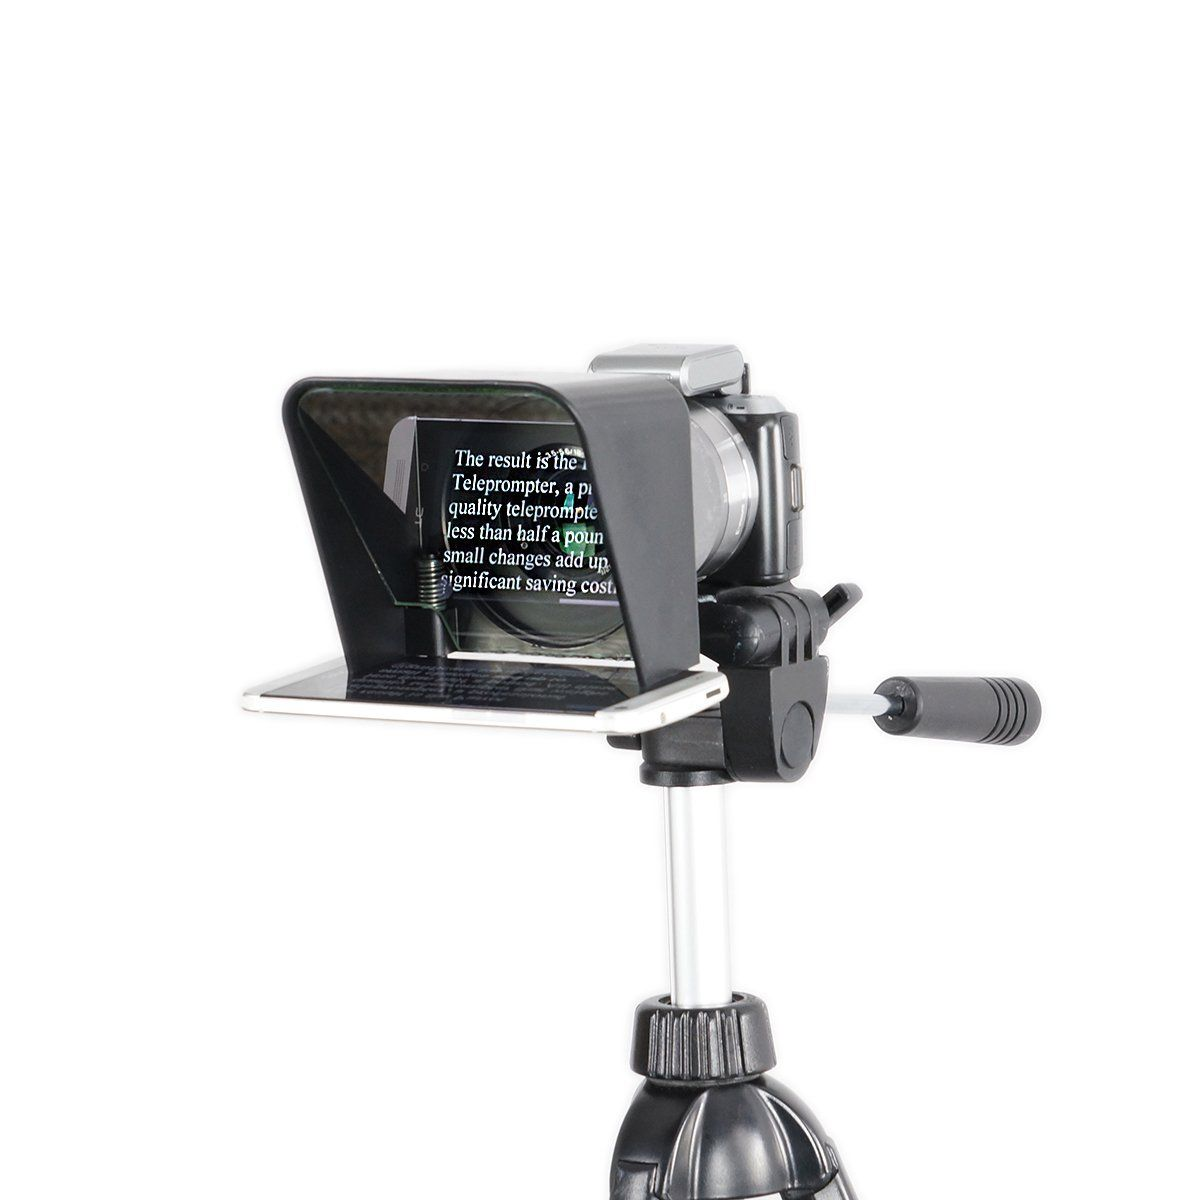 Amazon Com Parrot Teleprompter The Worlds Most Portable And Affordable Teleprompter Camera Photo Dslr Dslr Camera Readers Glasses